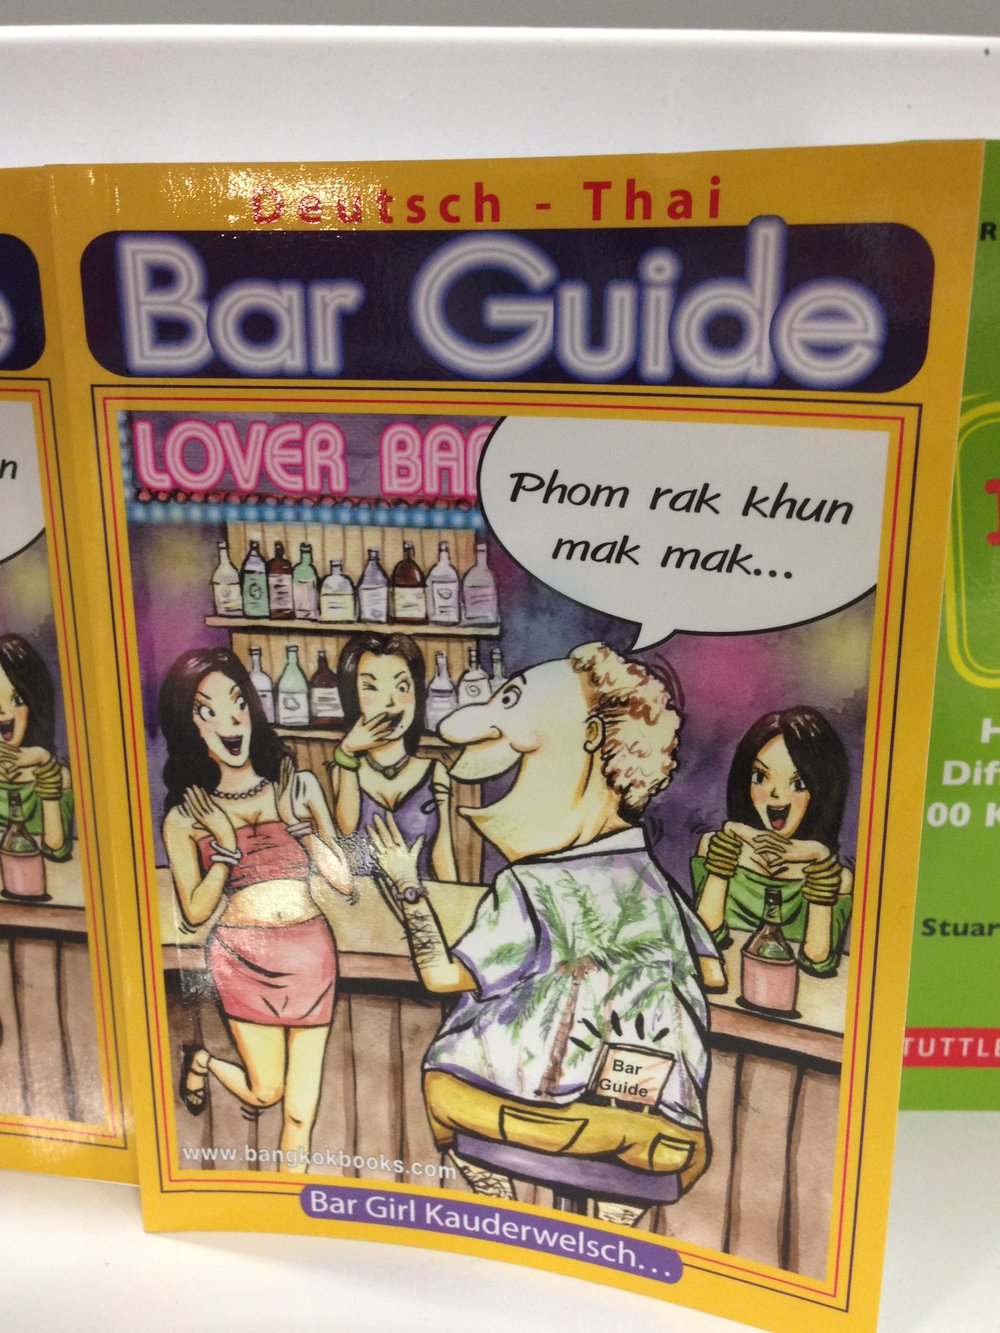 Even guides to Thai bars were sold in various languages.